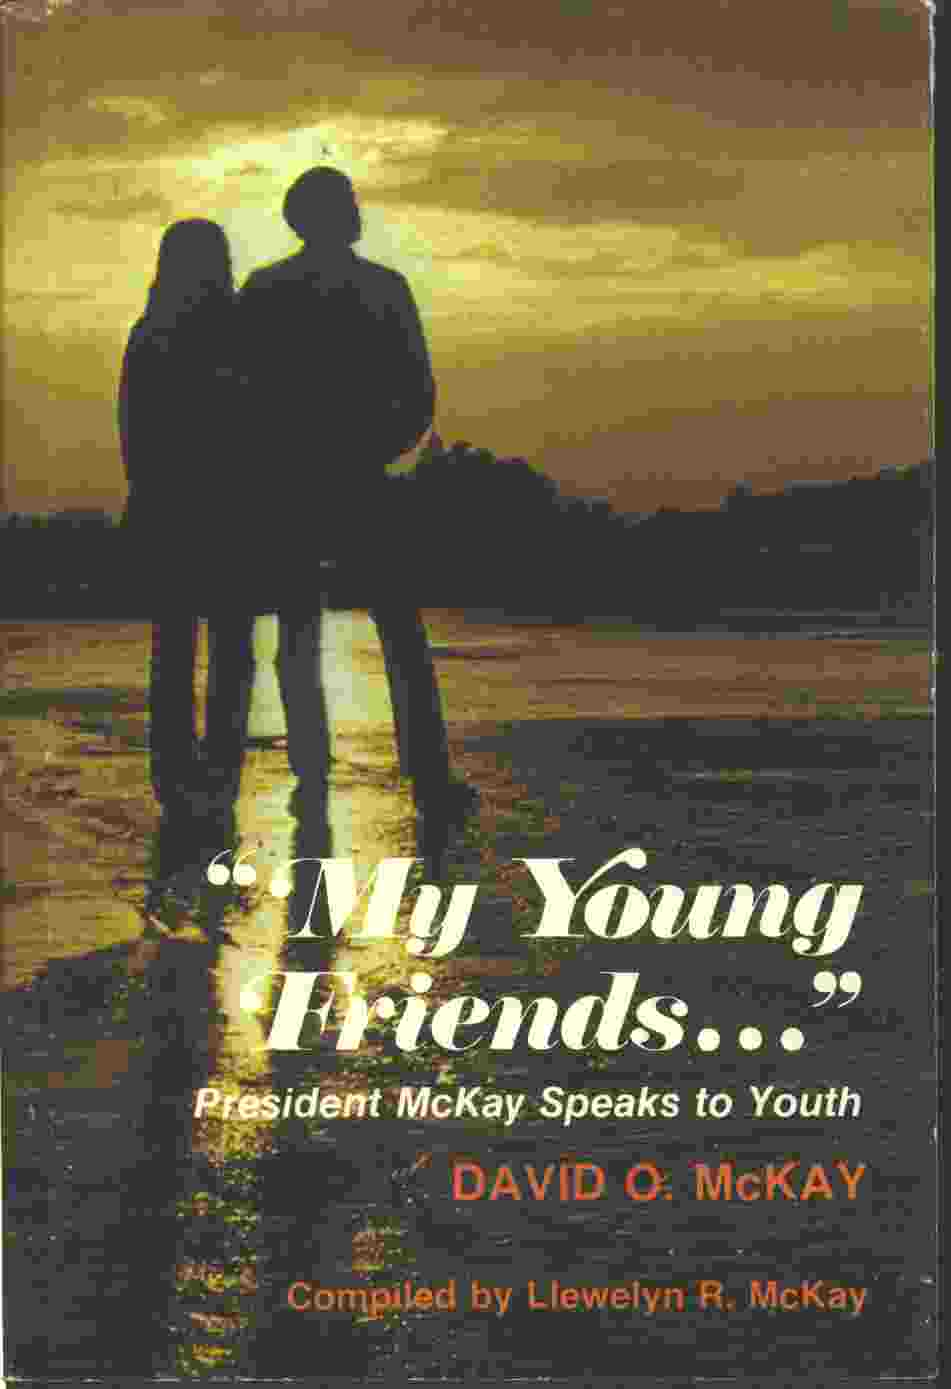 MY YOUNG FRIENDS - PRESIDENT MCKAY SPEAKS TO YOUTH, McKay, David Oman